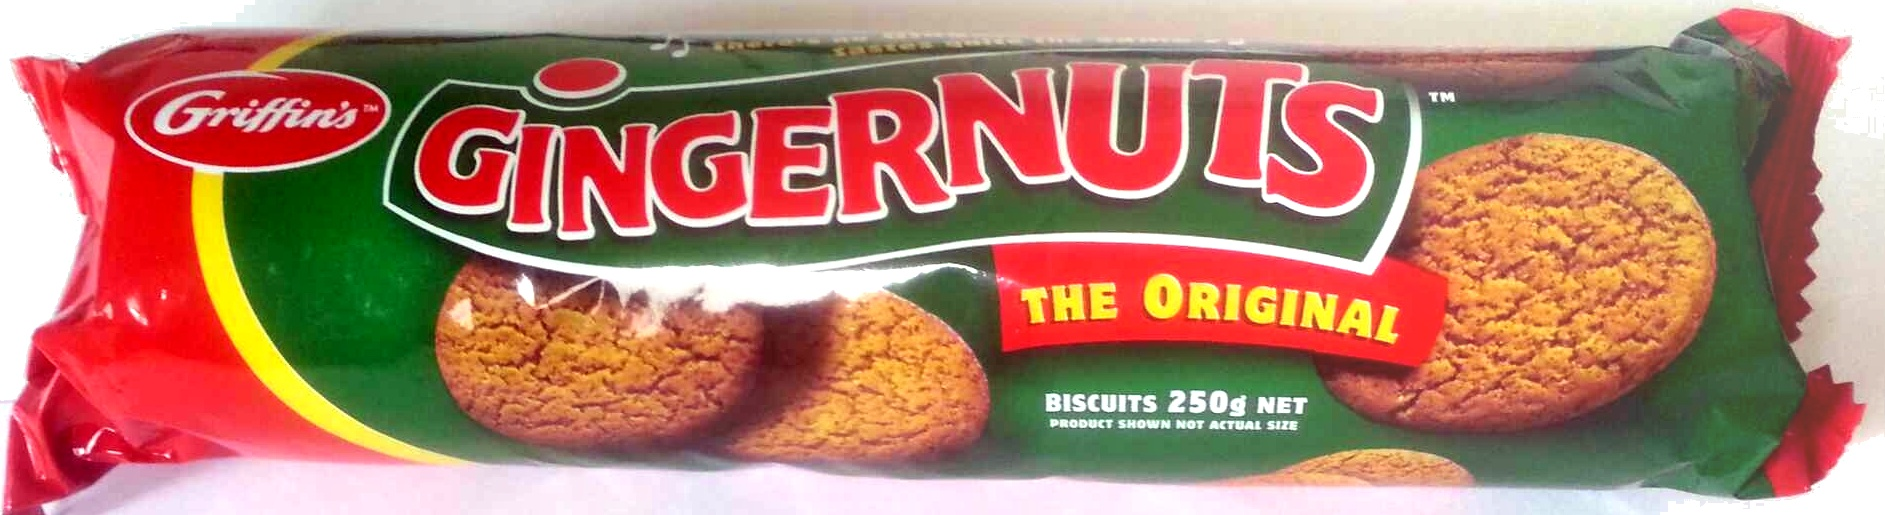 Gingernuts - Product